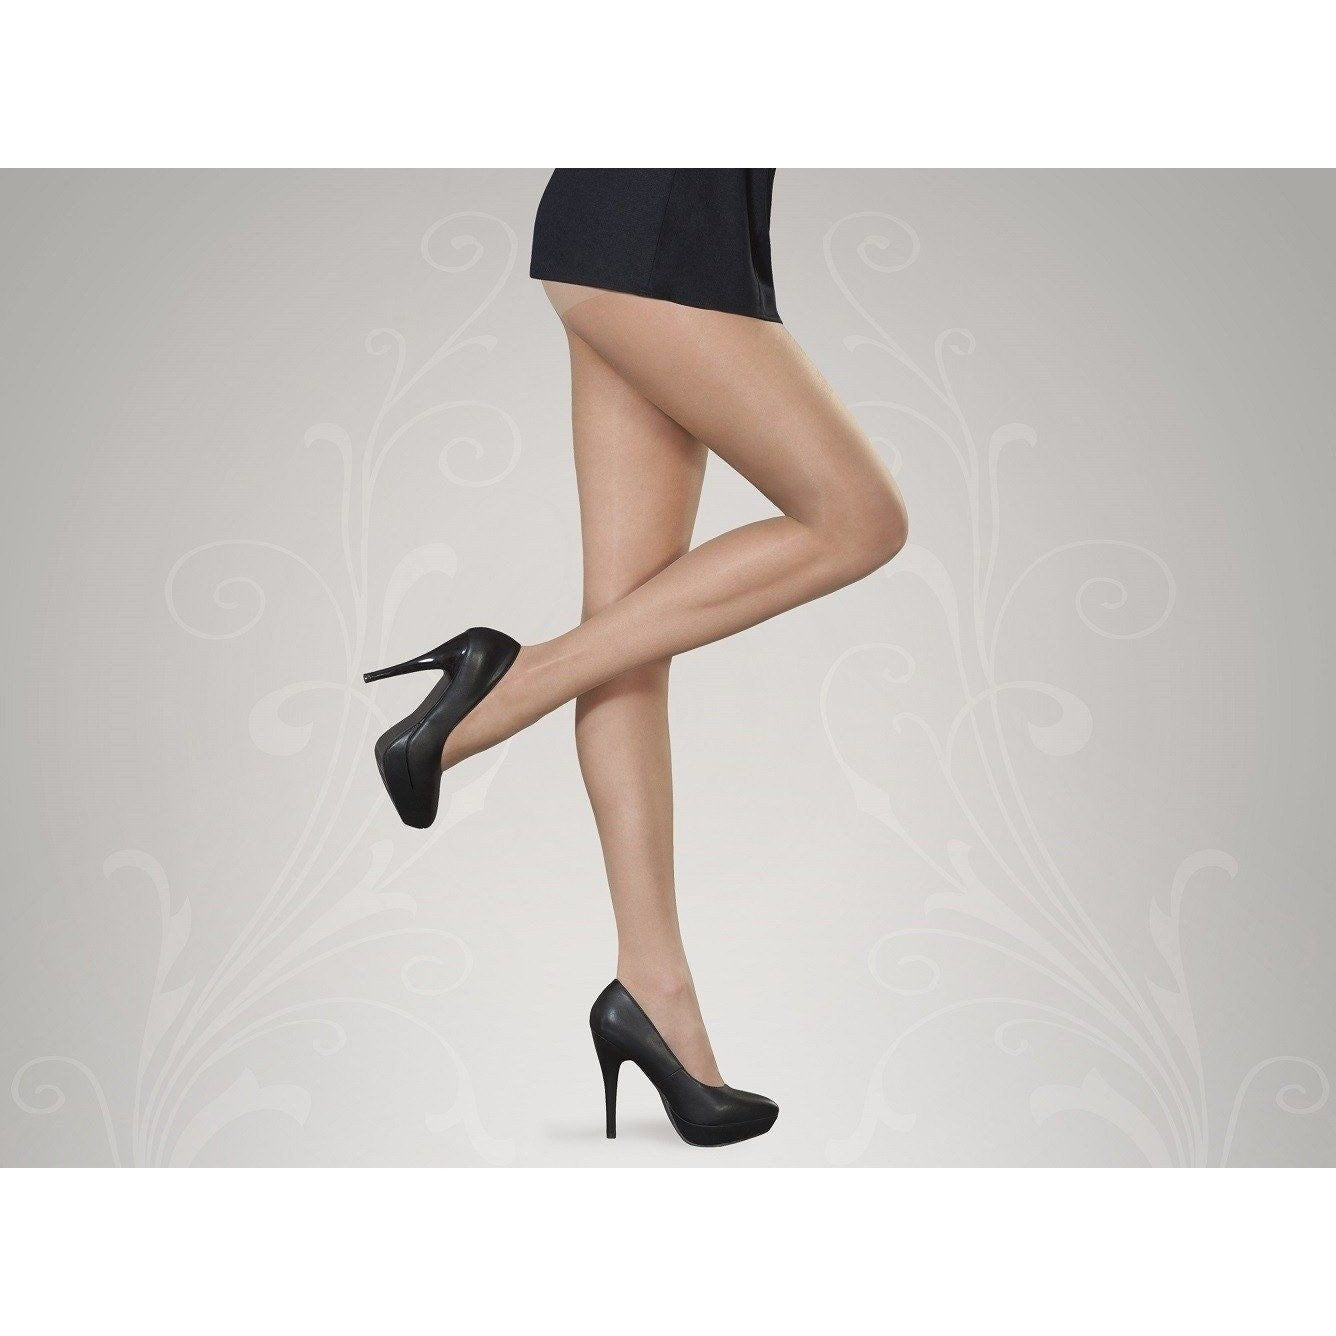 15 Denier tights Visione for <span class=money>€6.95 EUR</span> at Flirtywomen